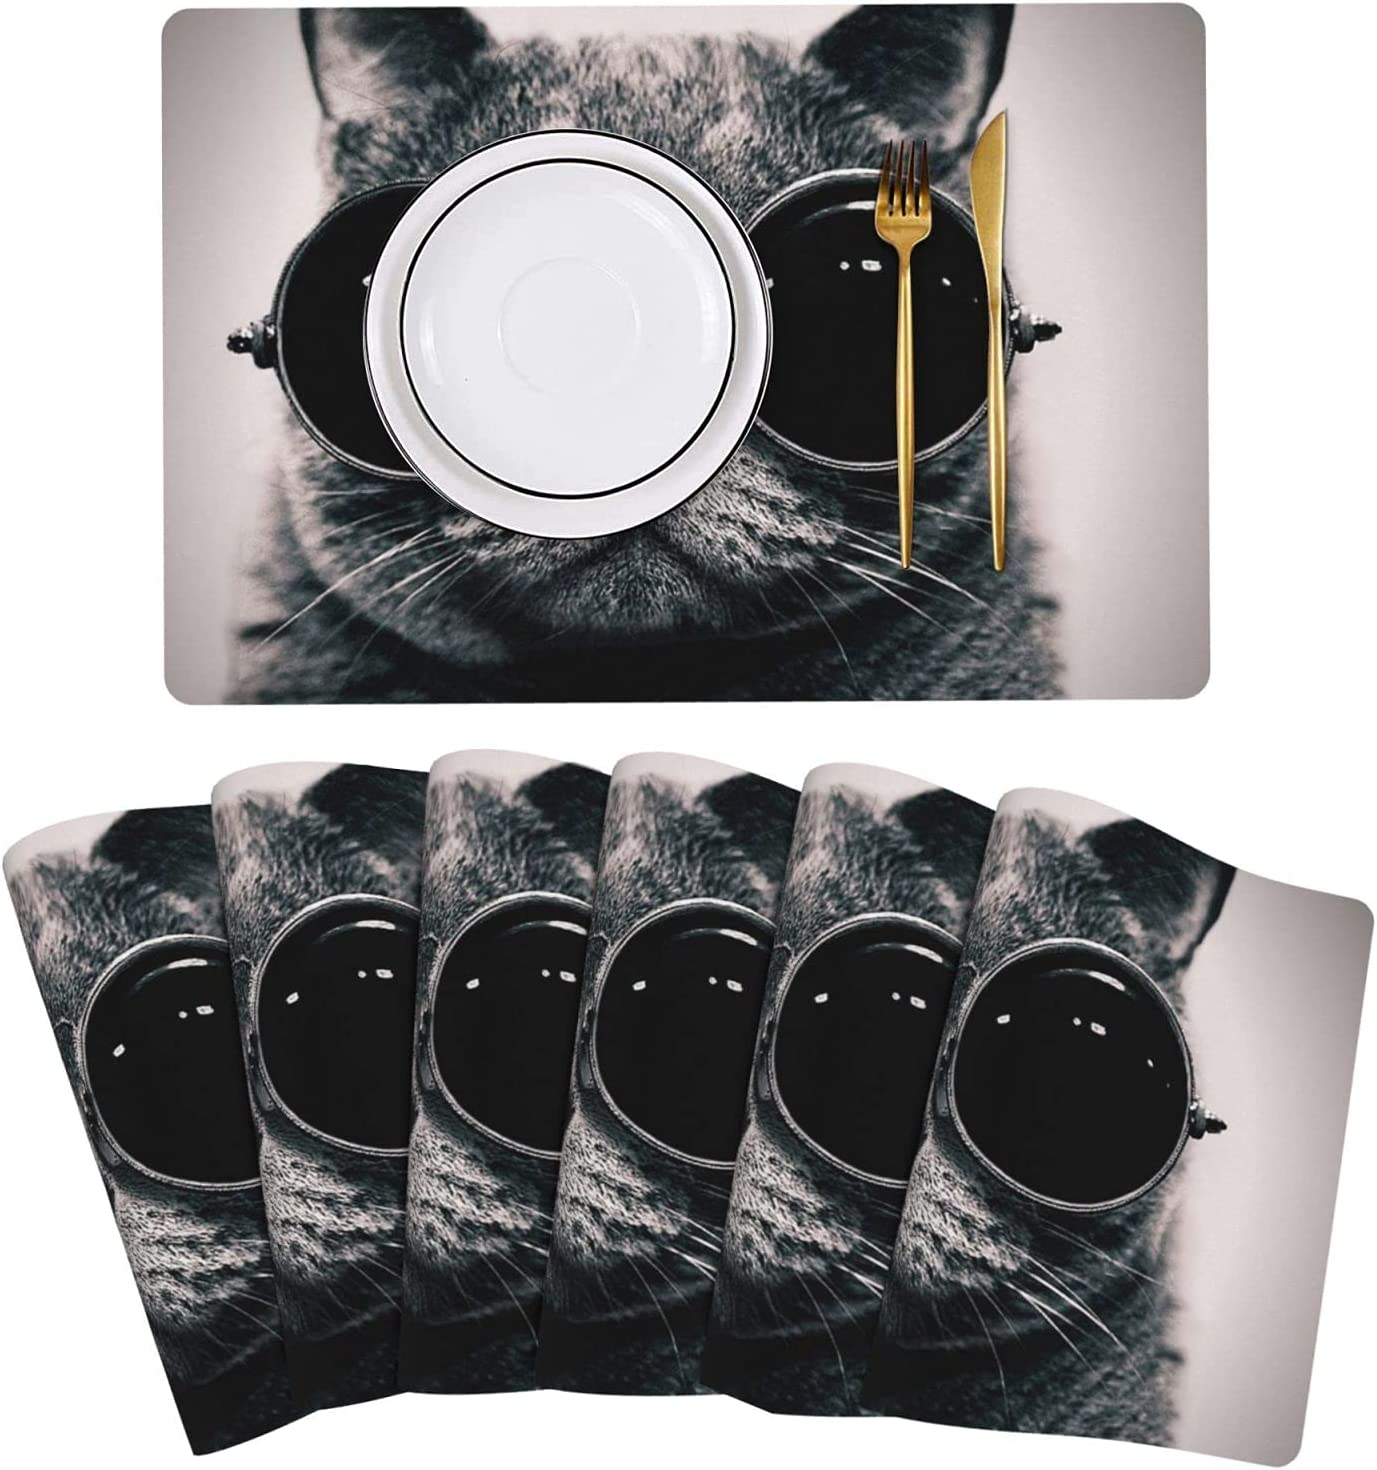 Cool New arrival cat with Glasses Mesa Mall Placemat Leather Set of Table 6 Easy Mats